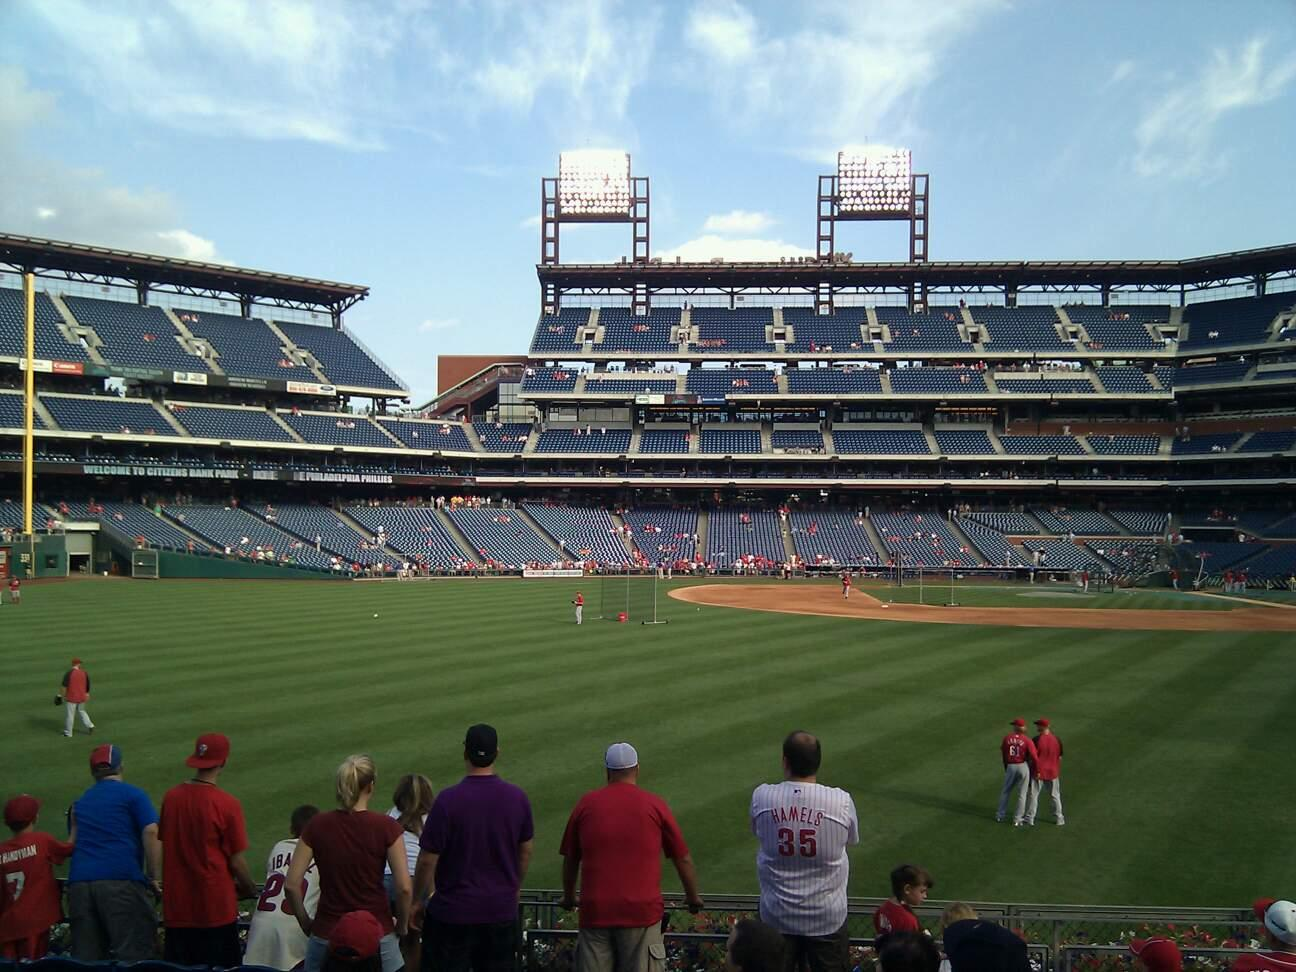 Citizens Bank Park Section 144 Row 9 Seat 12